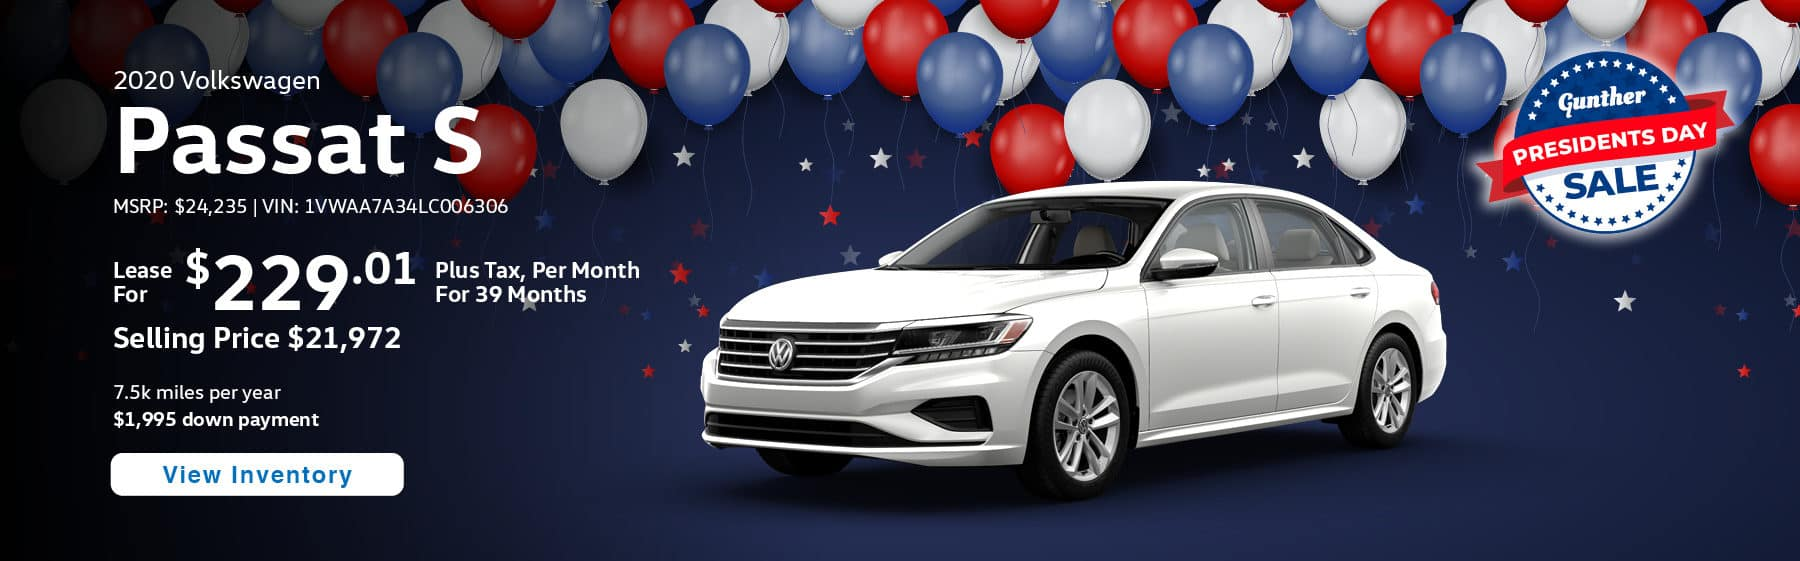 Lease the 2020 Passat S for $229.01 per month, plus tax for 39 months.